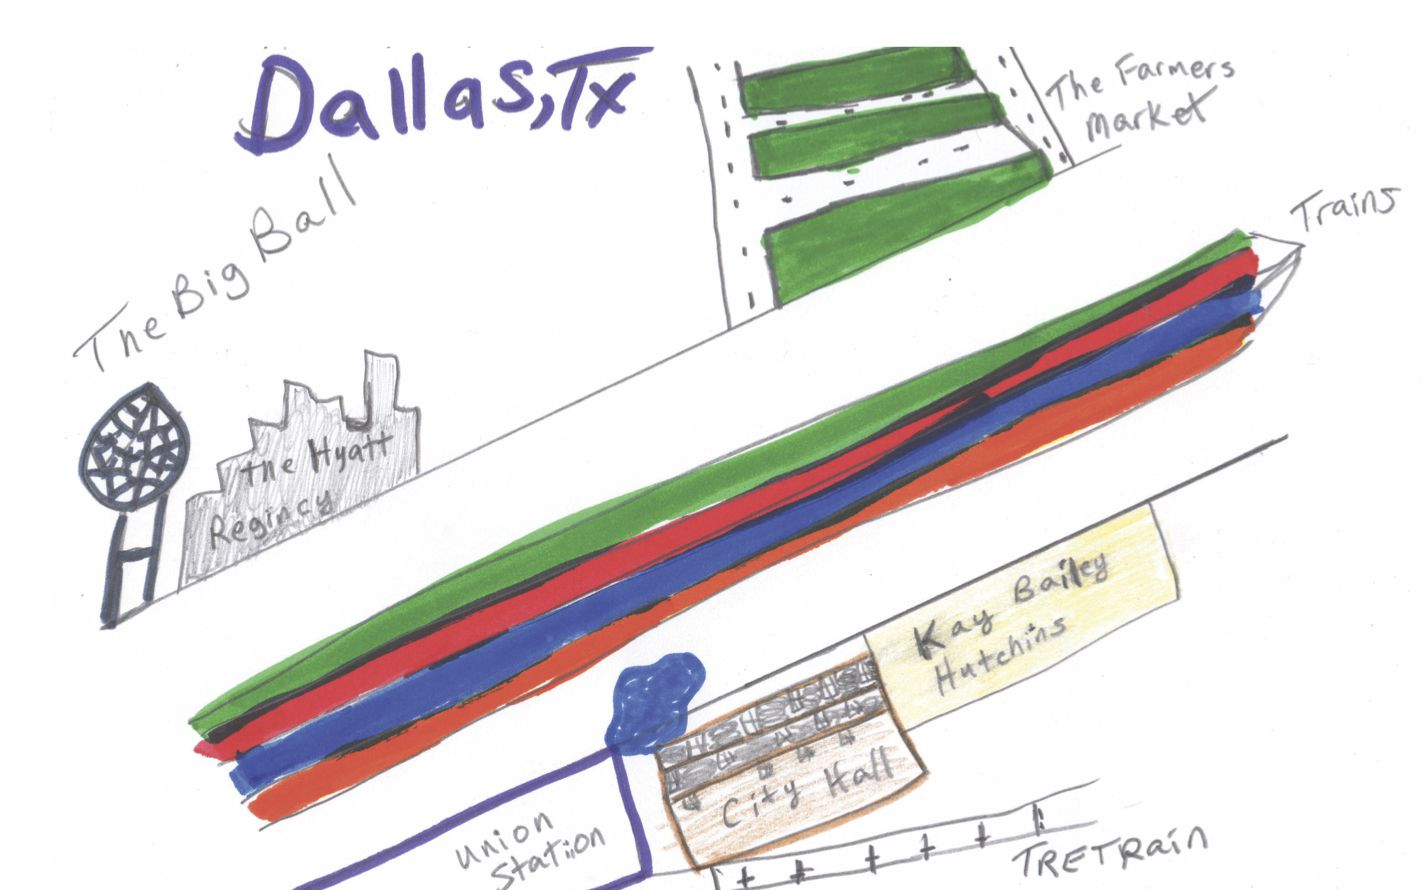 'Cartographic Gestures' is a collection of maps of Dallas drawn by different residents. The project was organized by Make Art with Purpose.